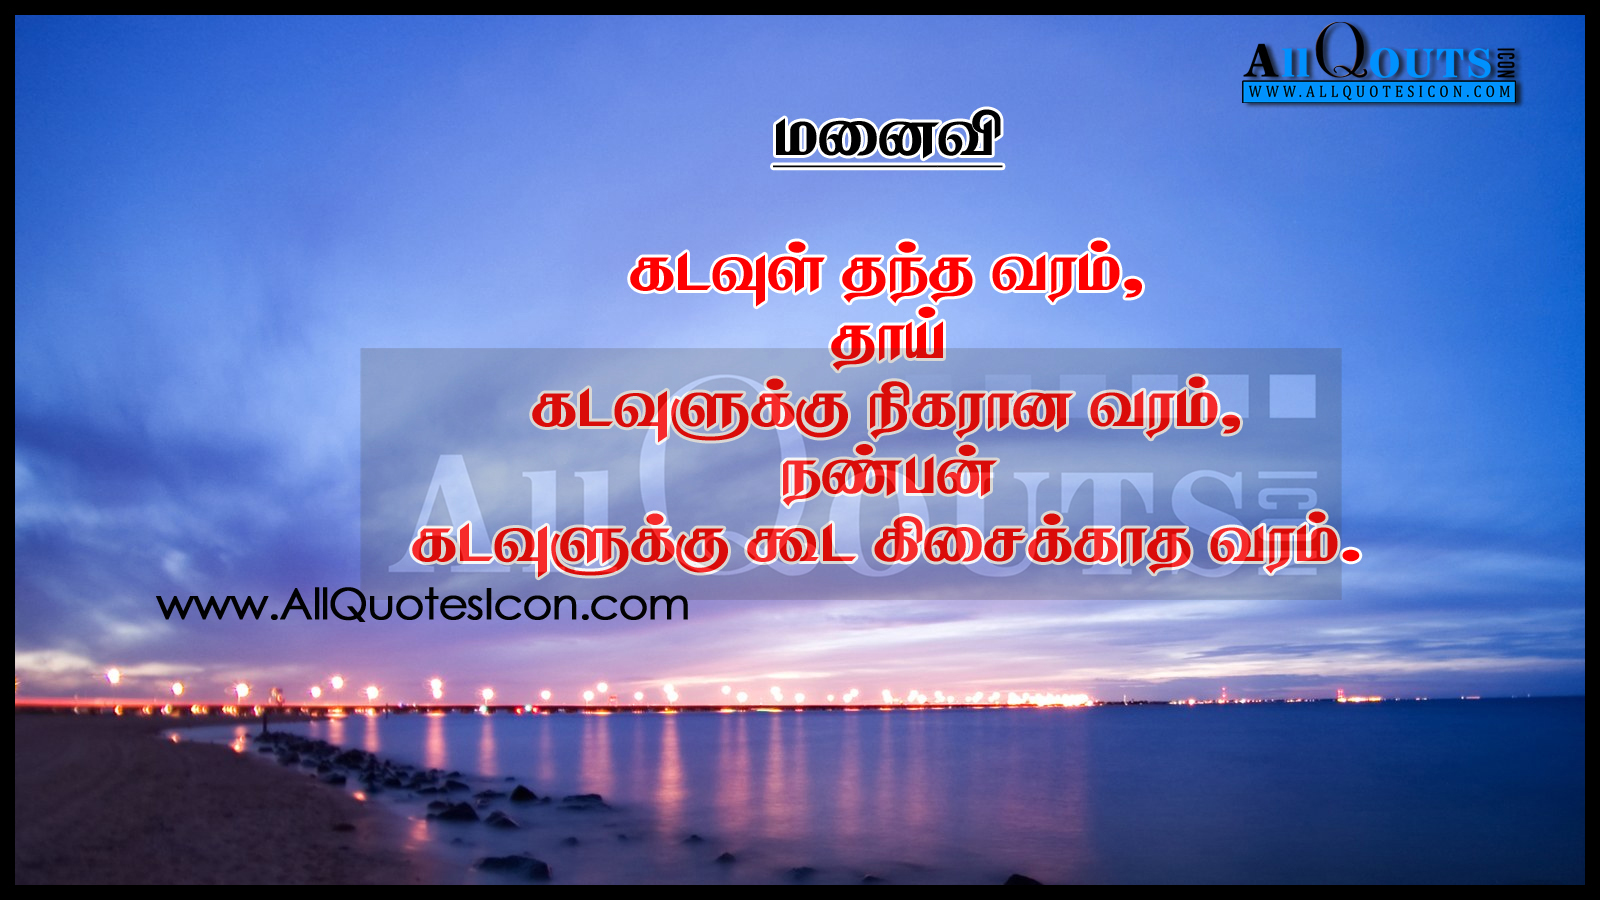 Tamil Beautiful Quotes Beautiful Quotes On Life With Sea